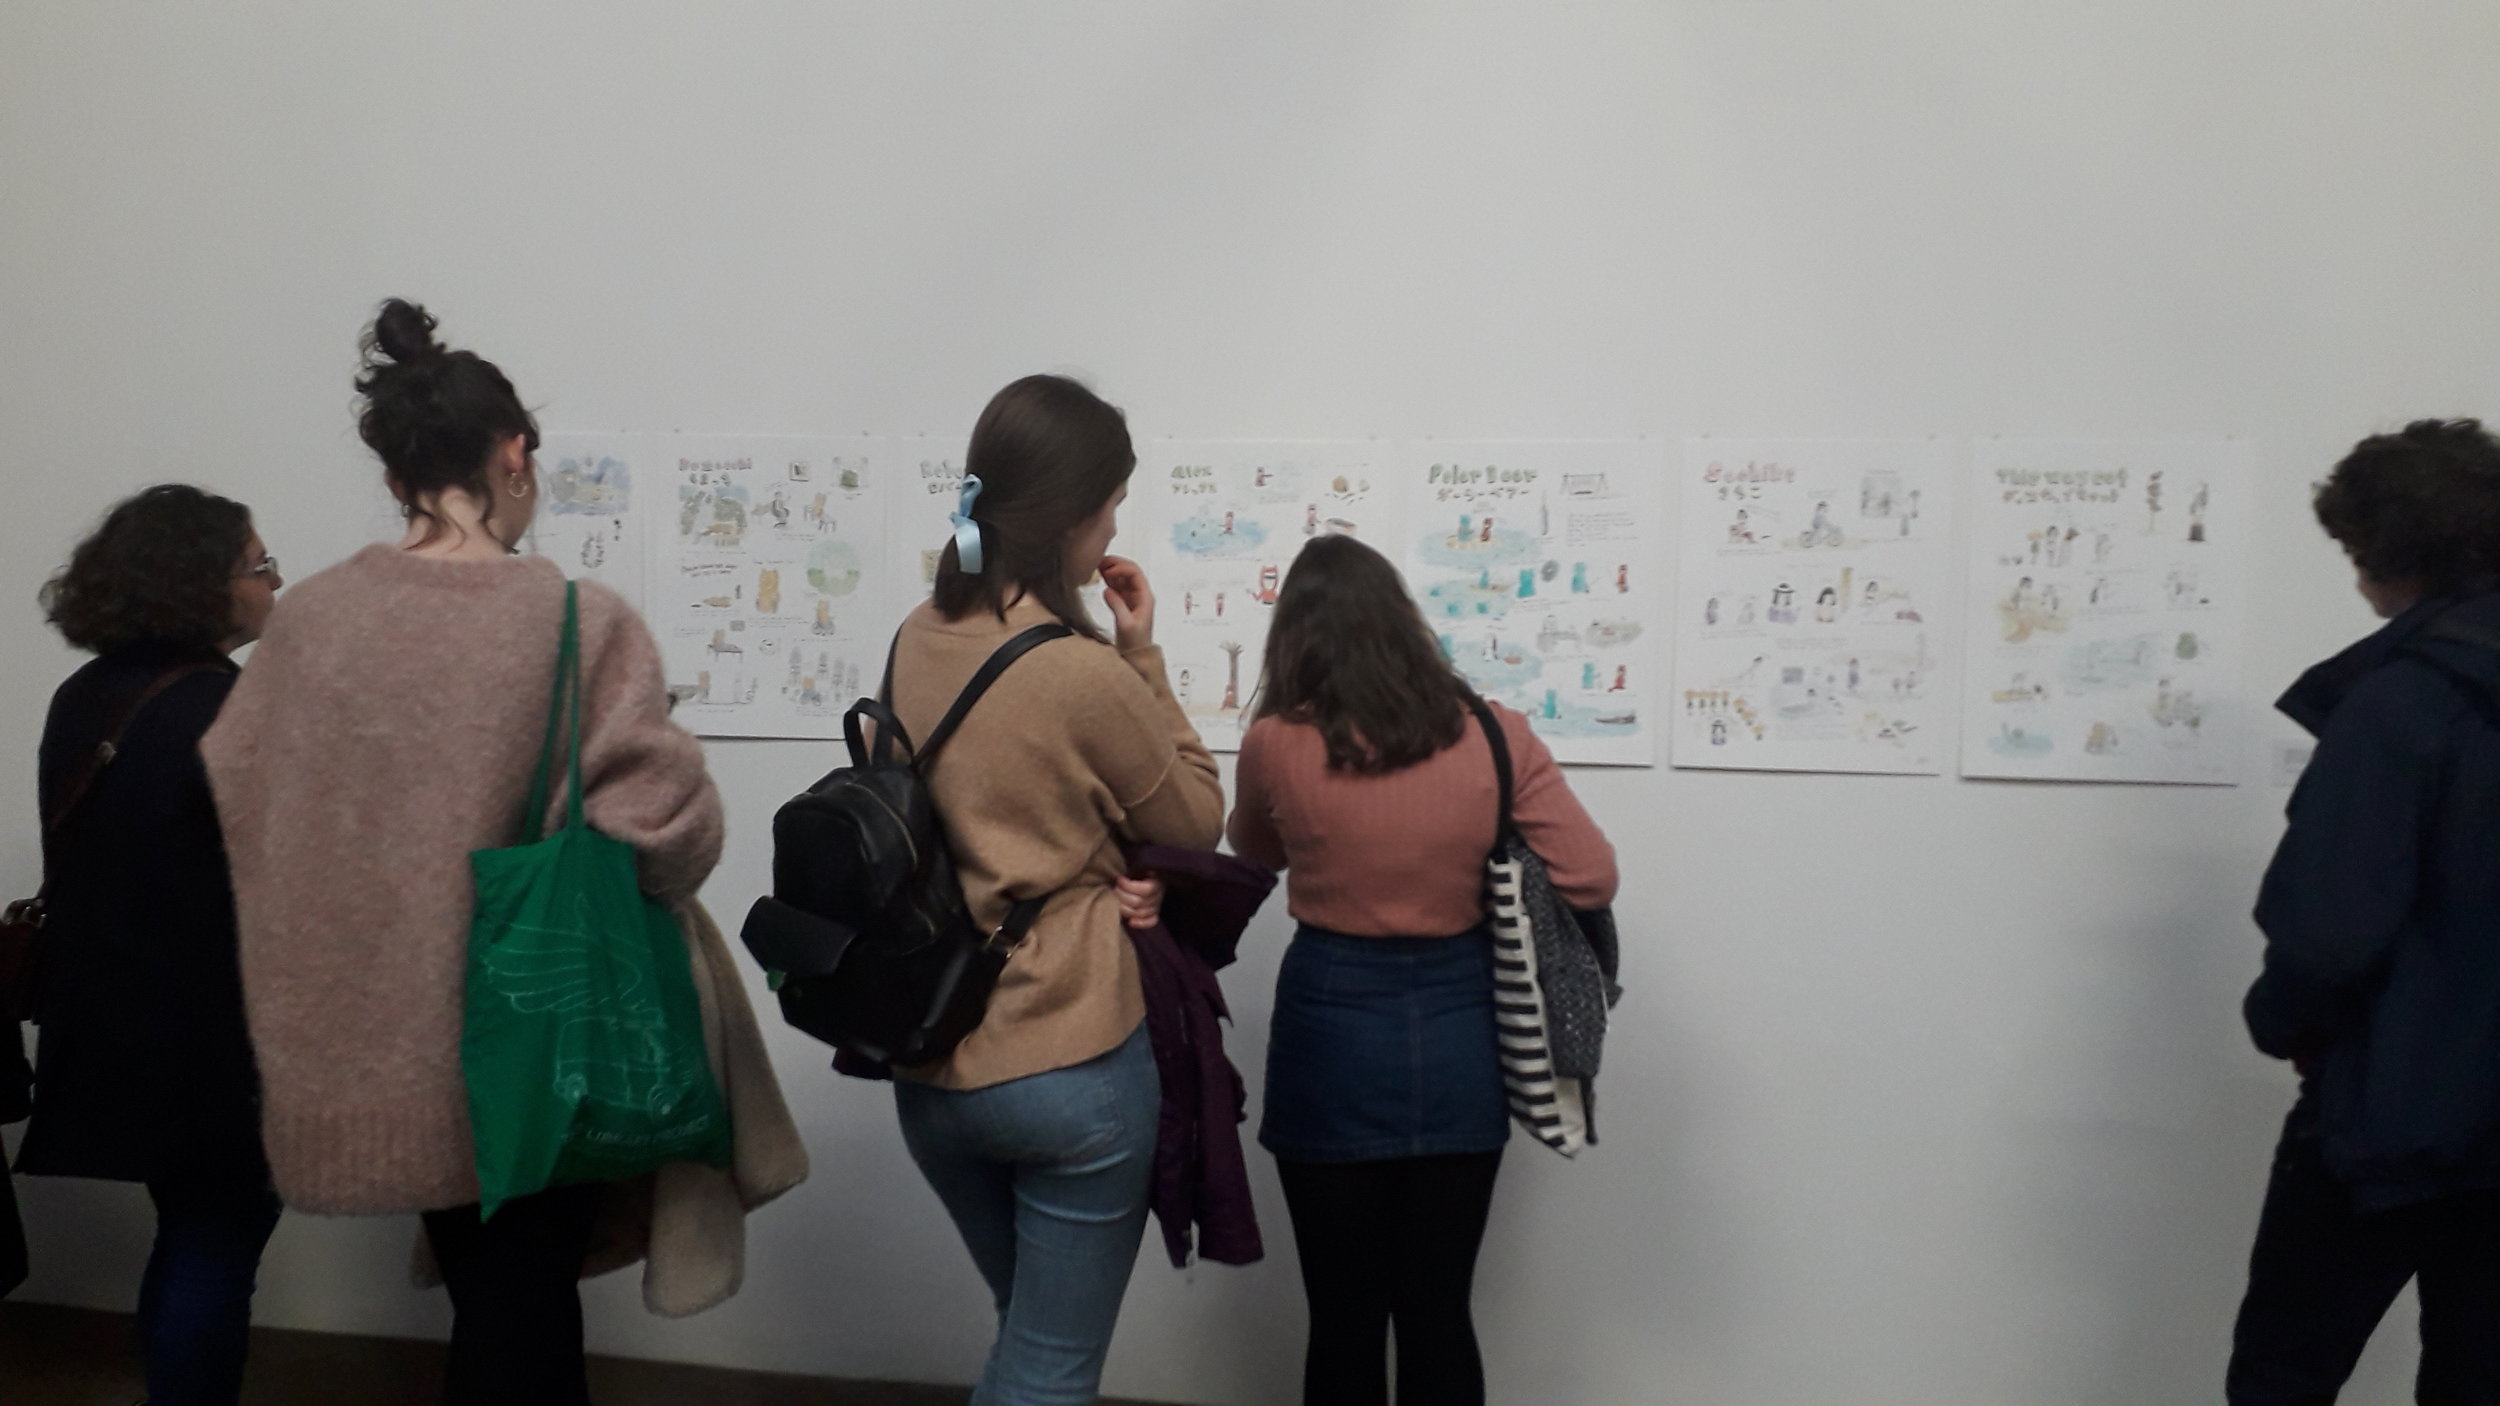 In Motherstankstation the group looked at the 'storyboard' drawings that artist Atsushi Kaga created in the development of his characters, day #1 field research #artisticprocess